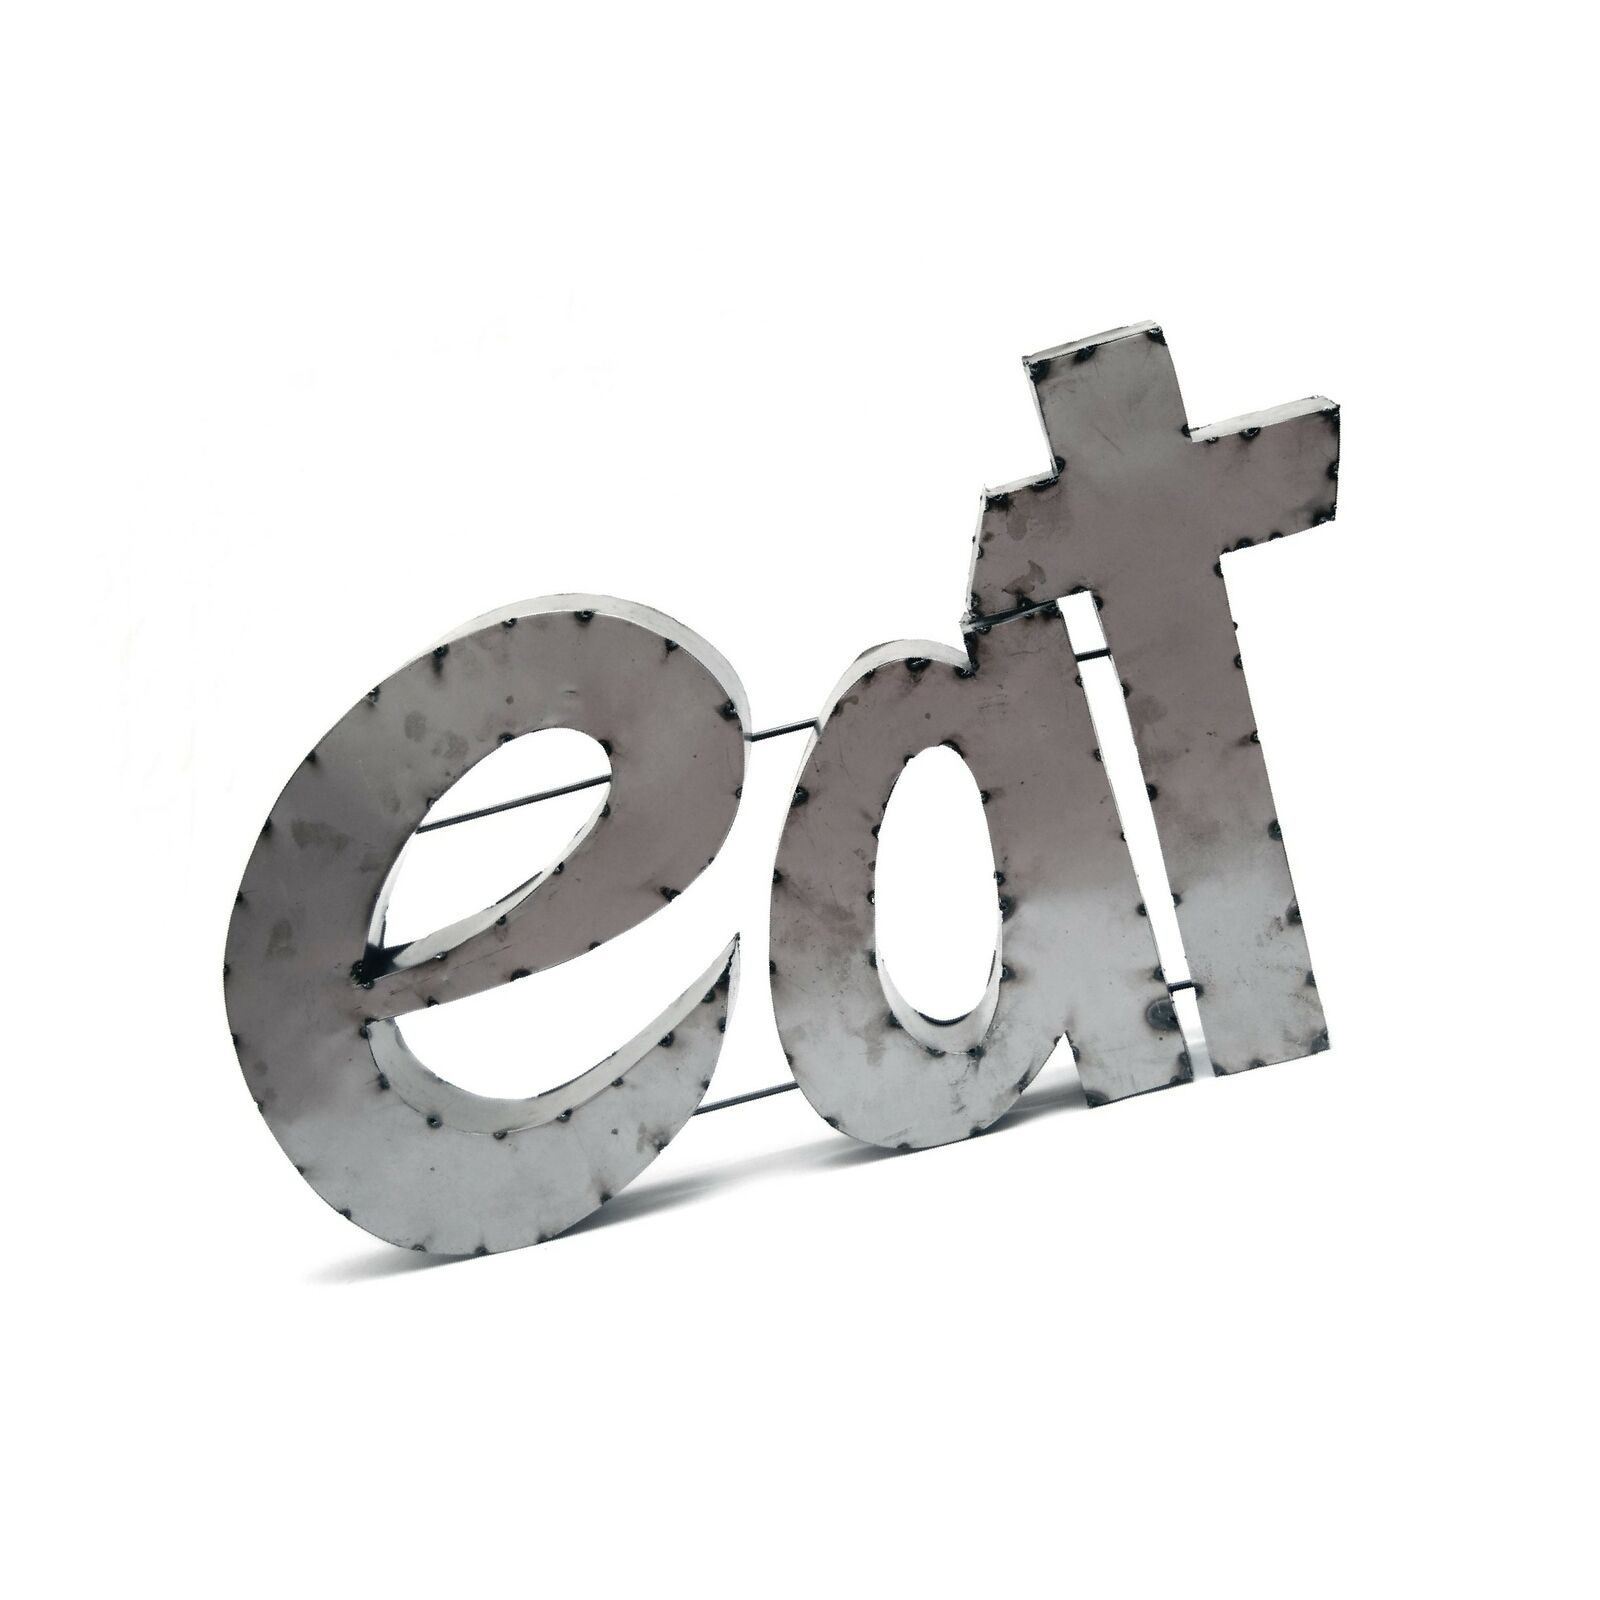 Rustic Arrow Eat Sign With Rebar For Decor, (View 5 of 30)